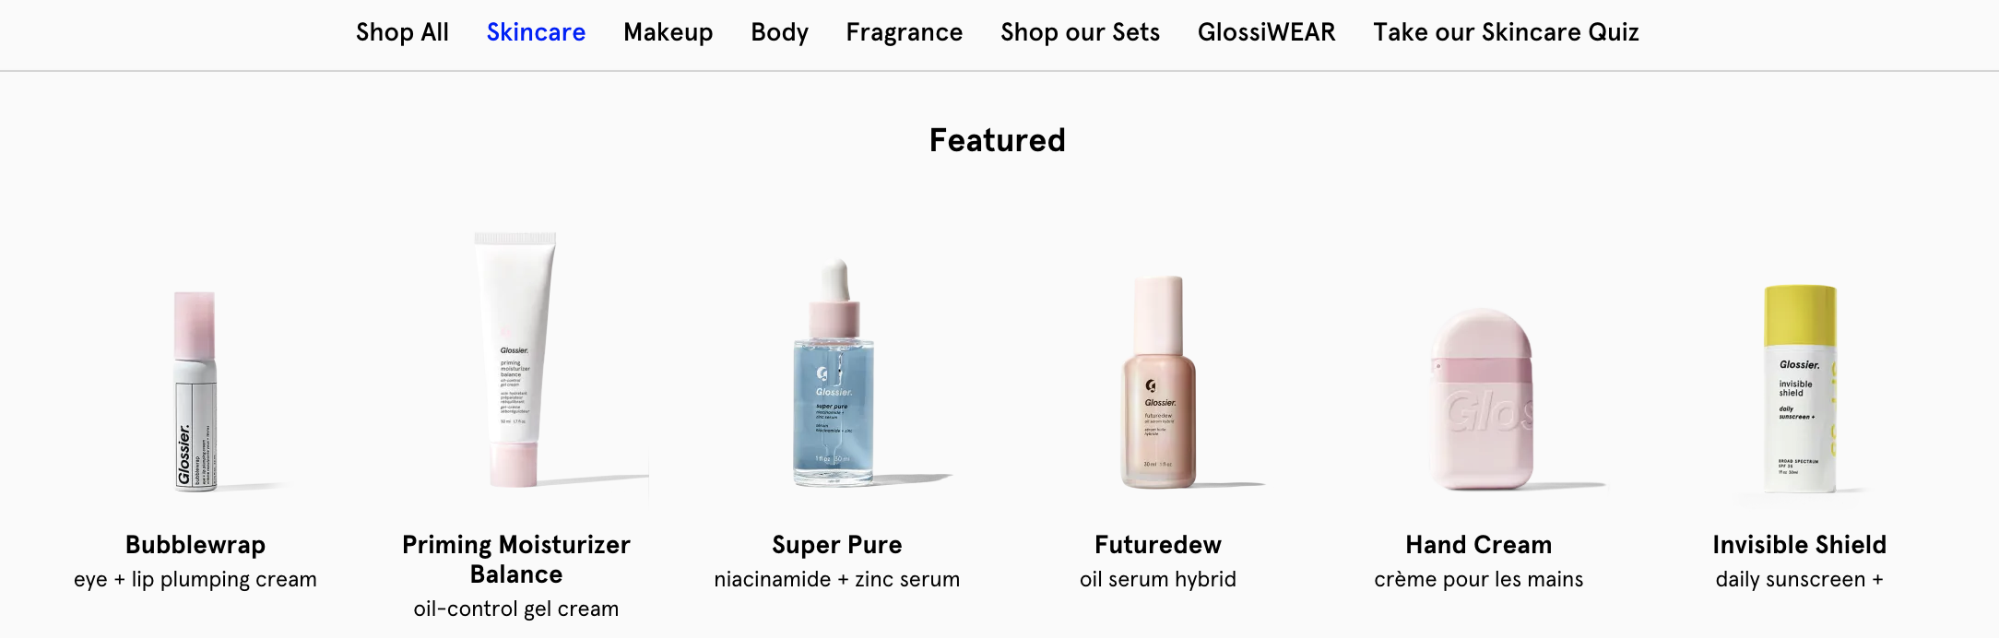 Featured product recommendations in an eCommerce navigation menu